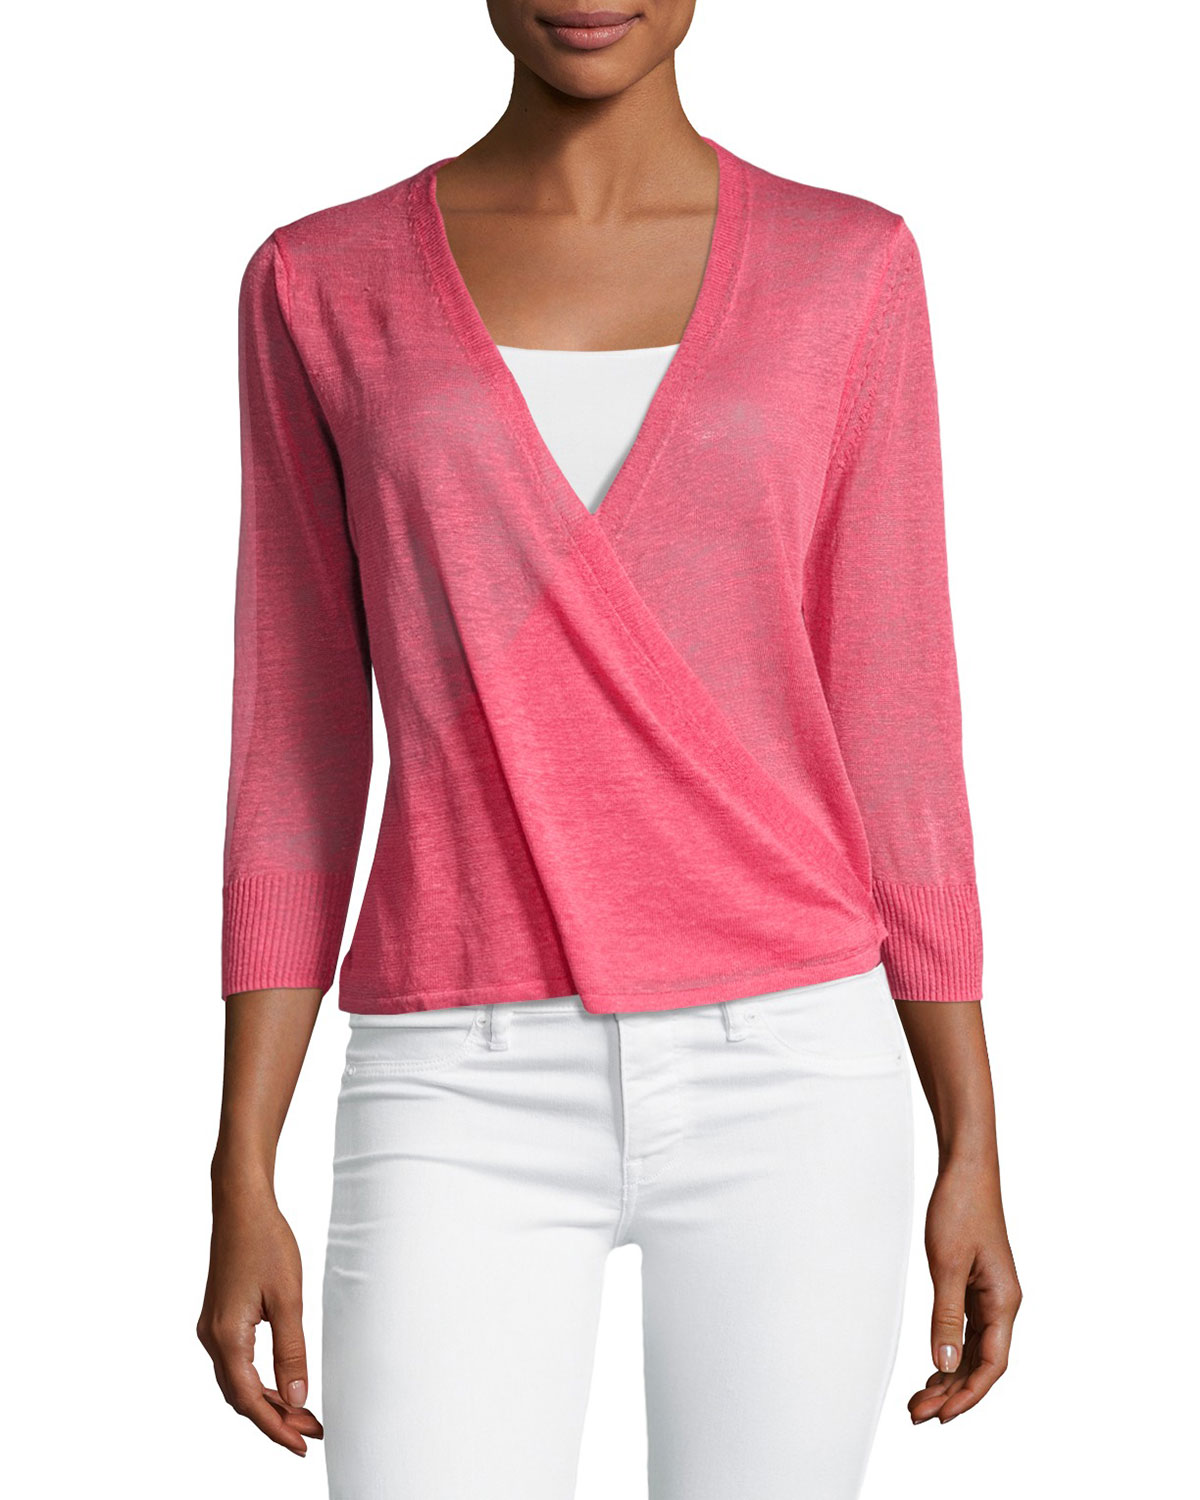 4-Way 3/4-Sleeve Cardigan, Pink, Petite